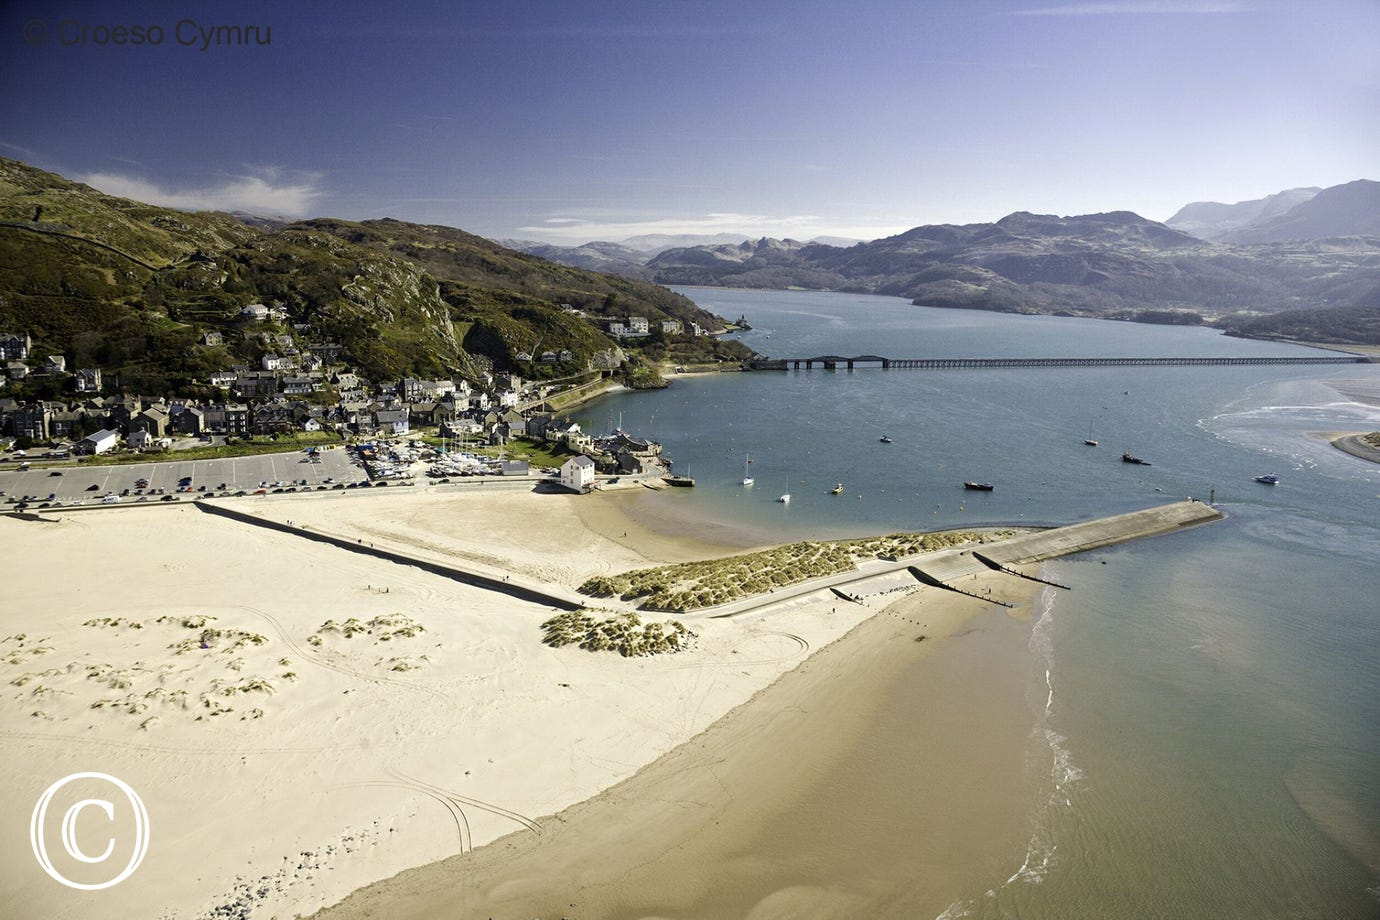 The Mawddach Trail brings you to this beautiful, Blue Flag beach at Barmouth